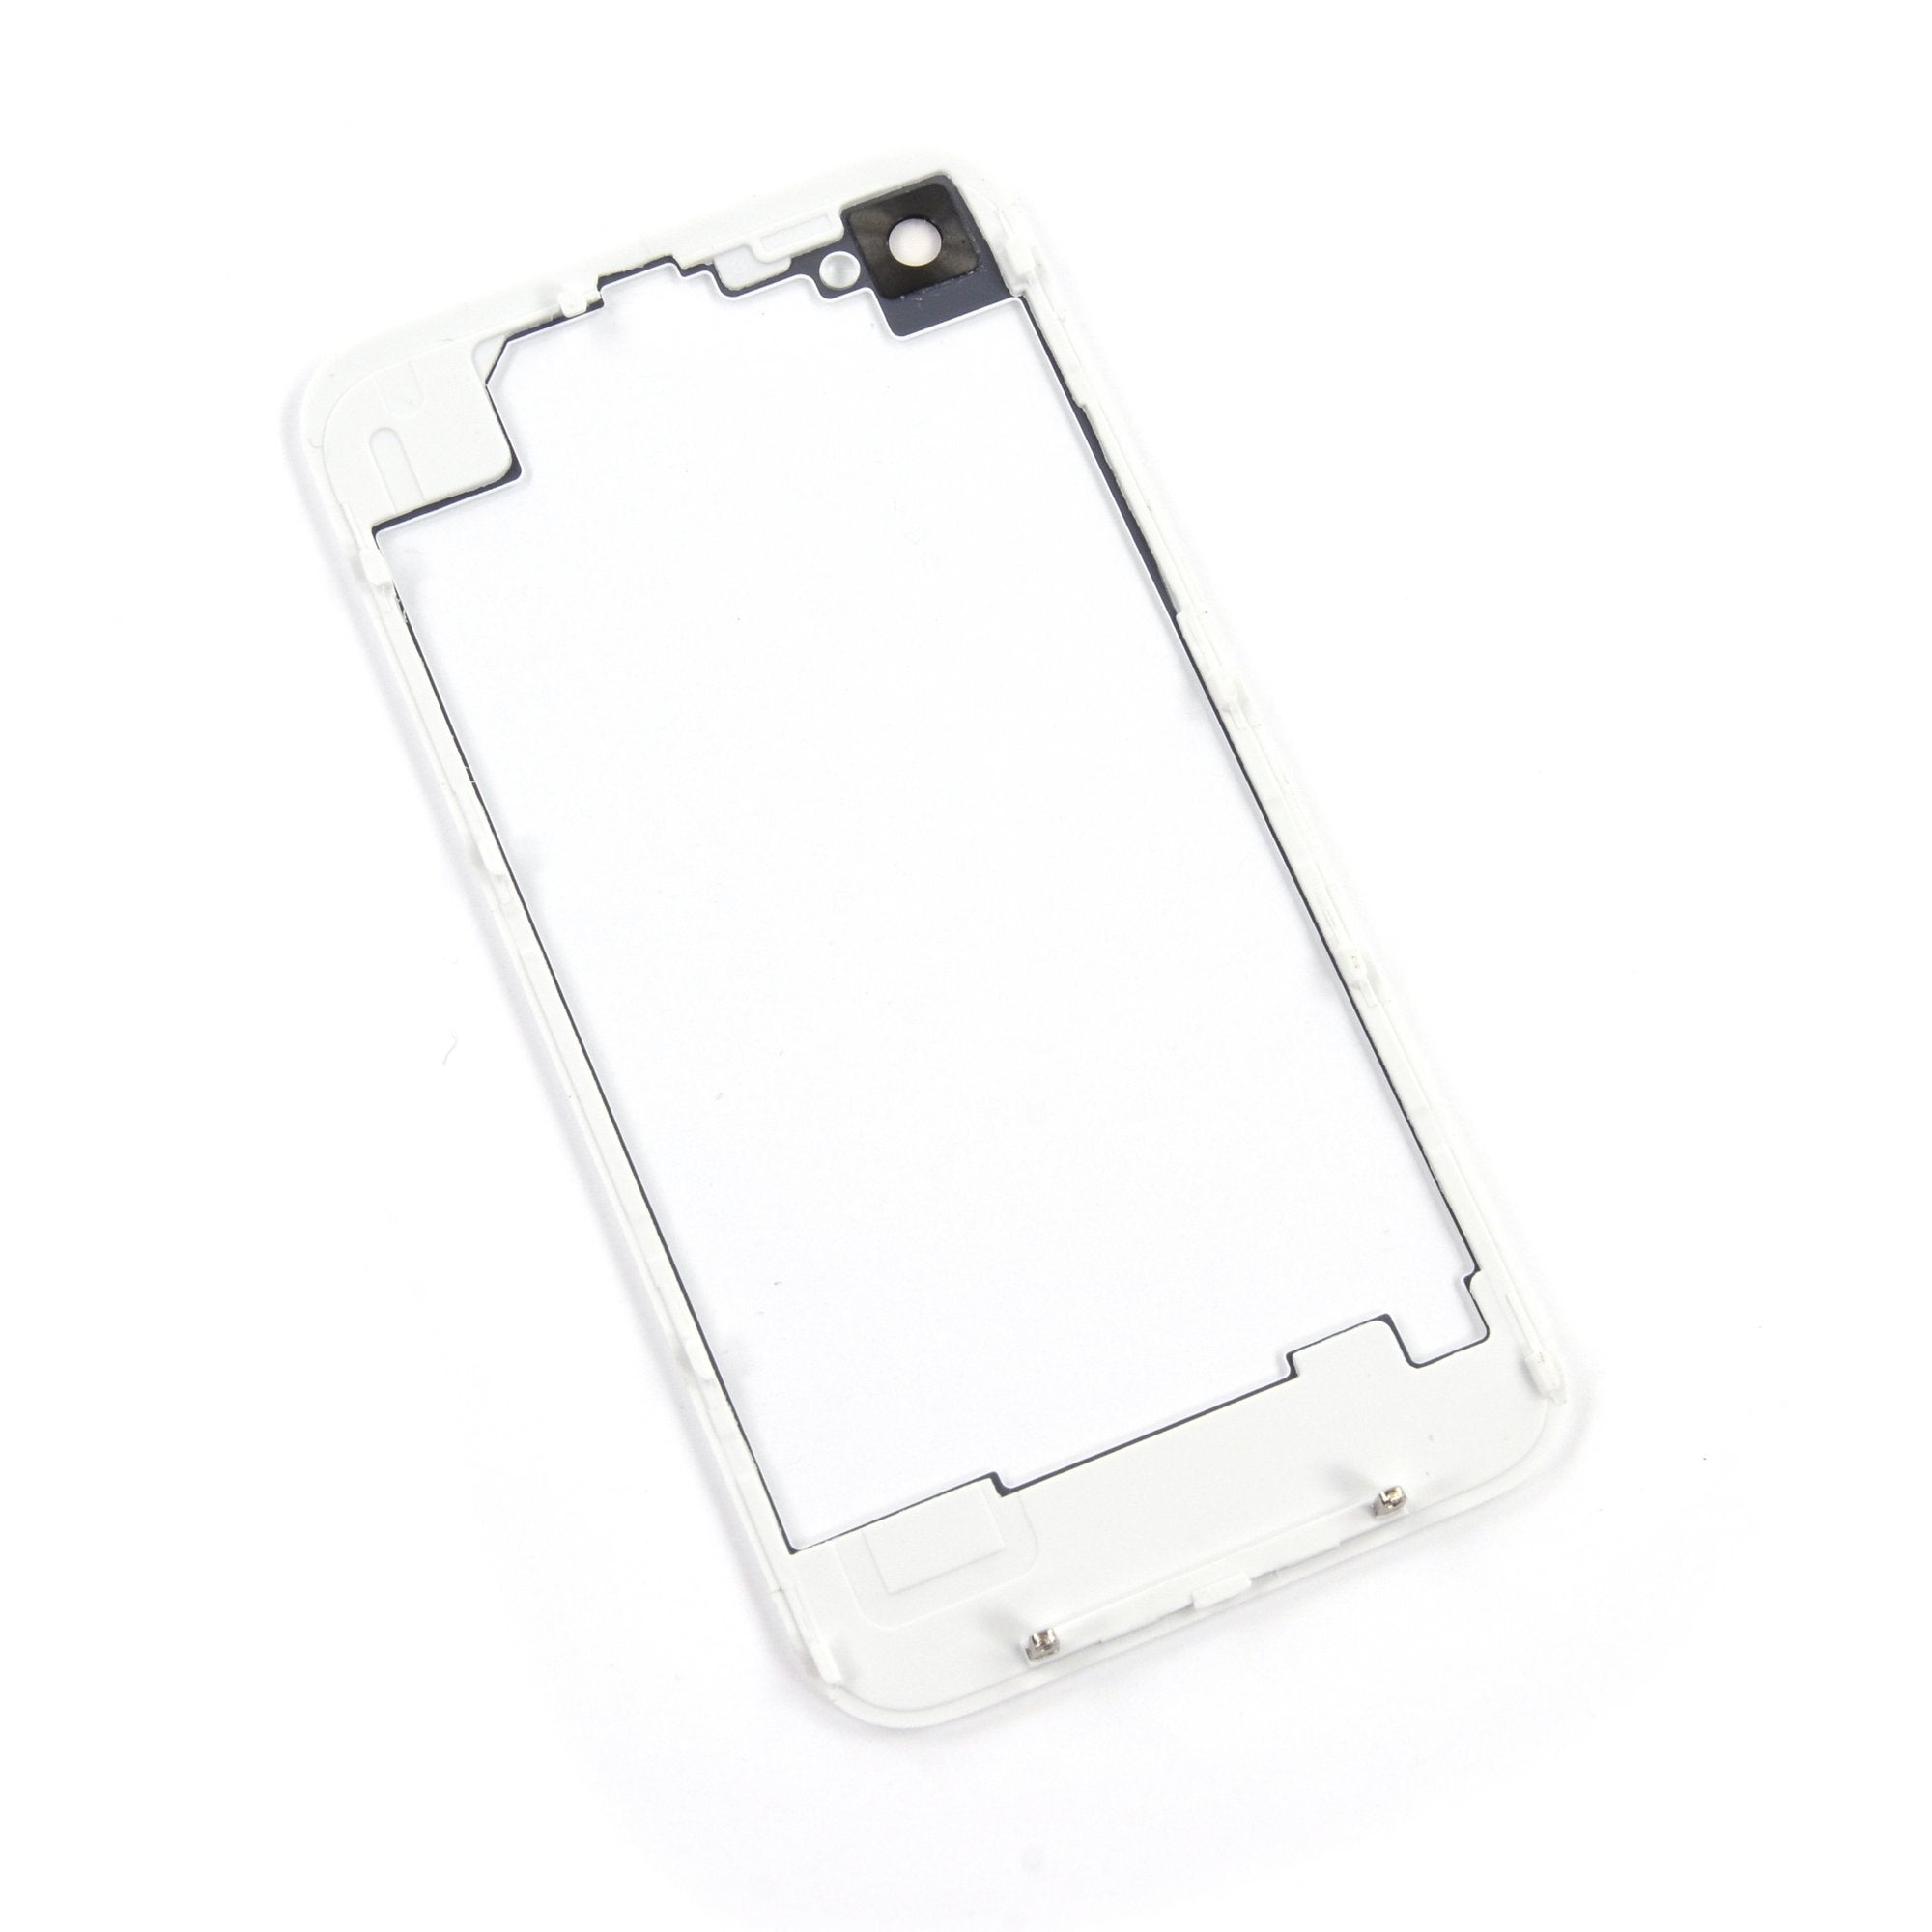 iPhone 4 Transparent Rear Panel